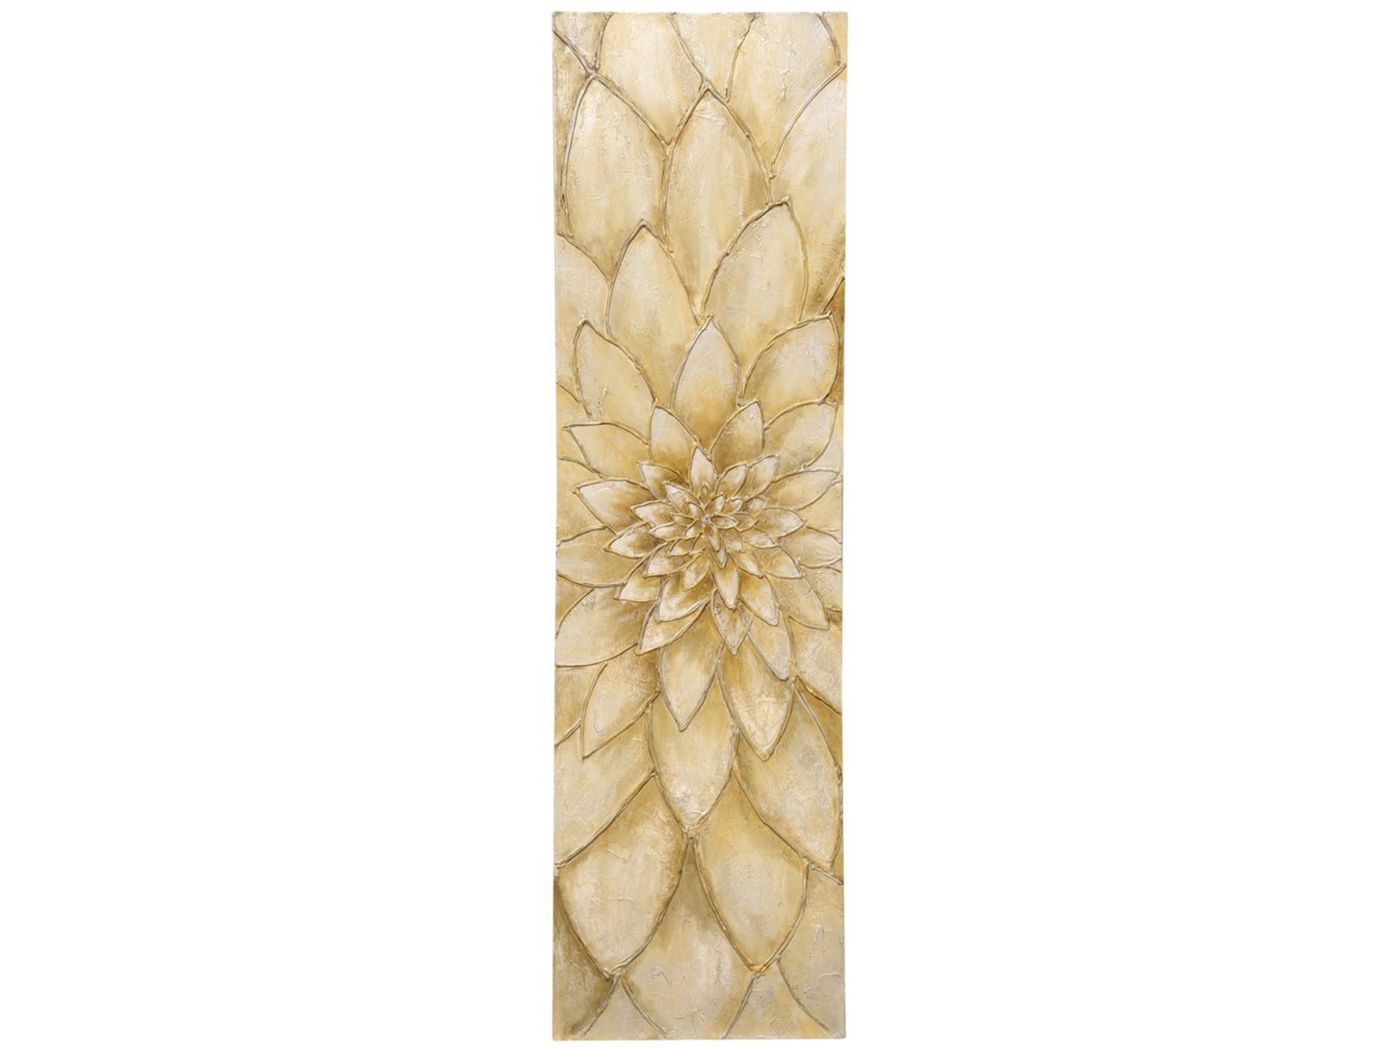 "Ivory Floral Textured Handpainted Canvas 20""W x 72""H"